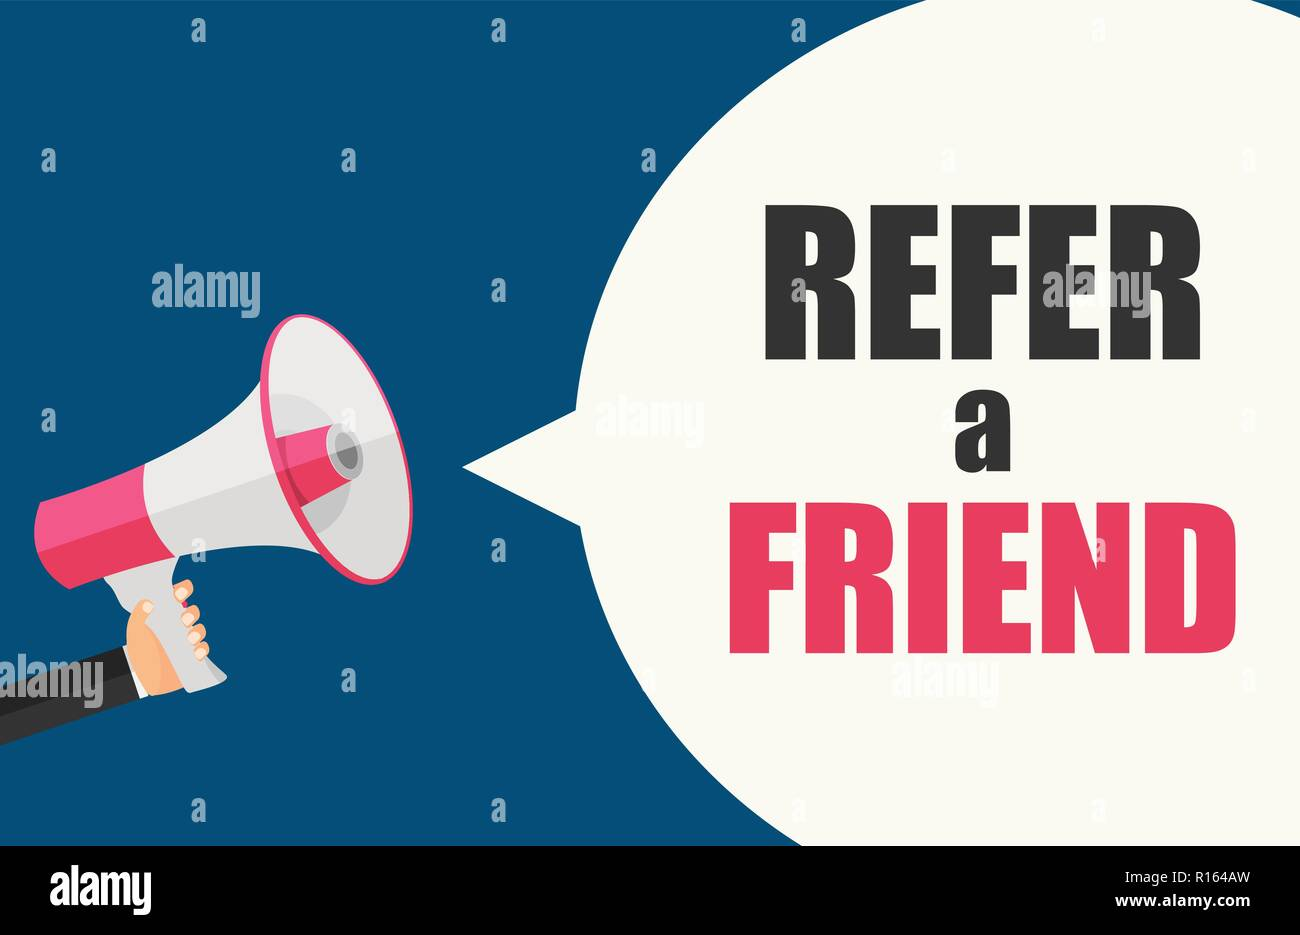 Refer a Friend Poster with Megaphone and Hand. Vector Illustration  - Stock Image